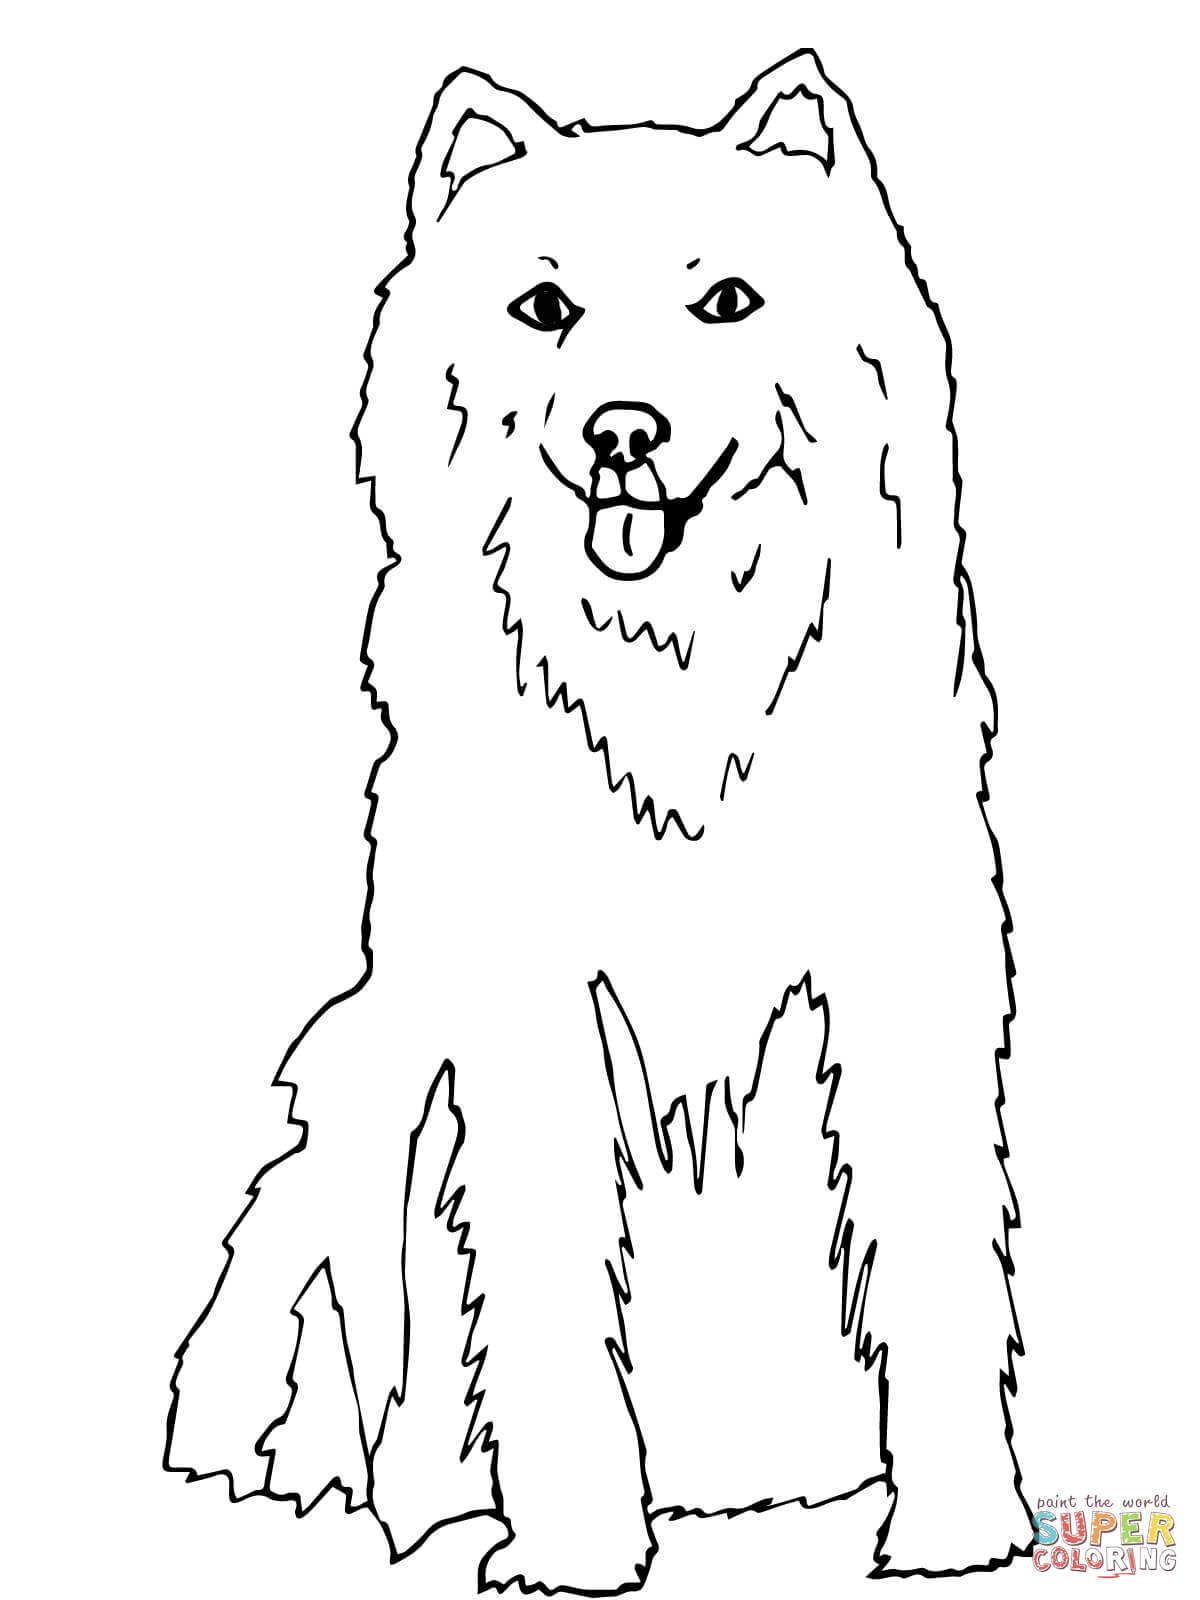 Siberian Husky Dog coloring page | Free Printable Coloring Pages